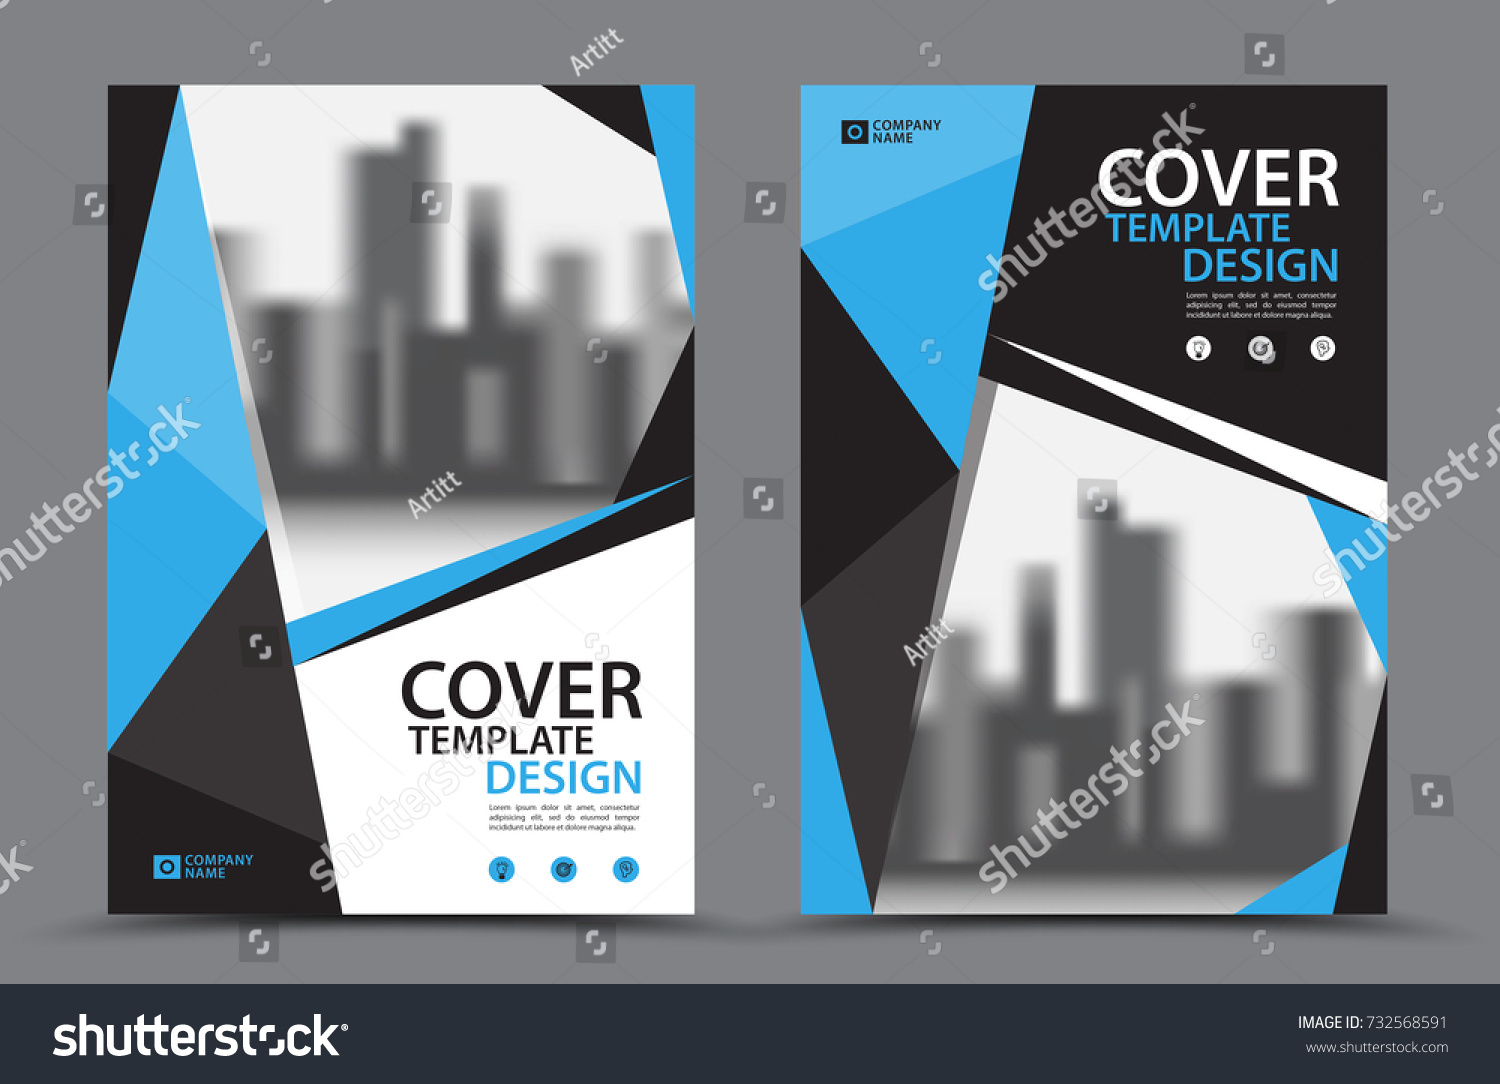 Business Book Cover Design Template : Blue color scheme city background business stock vector